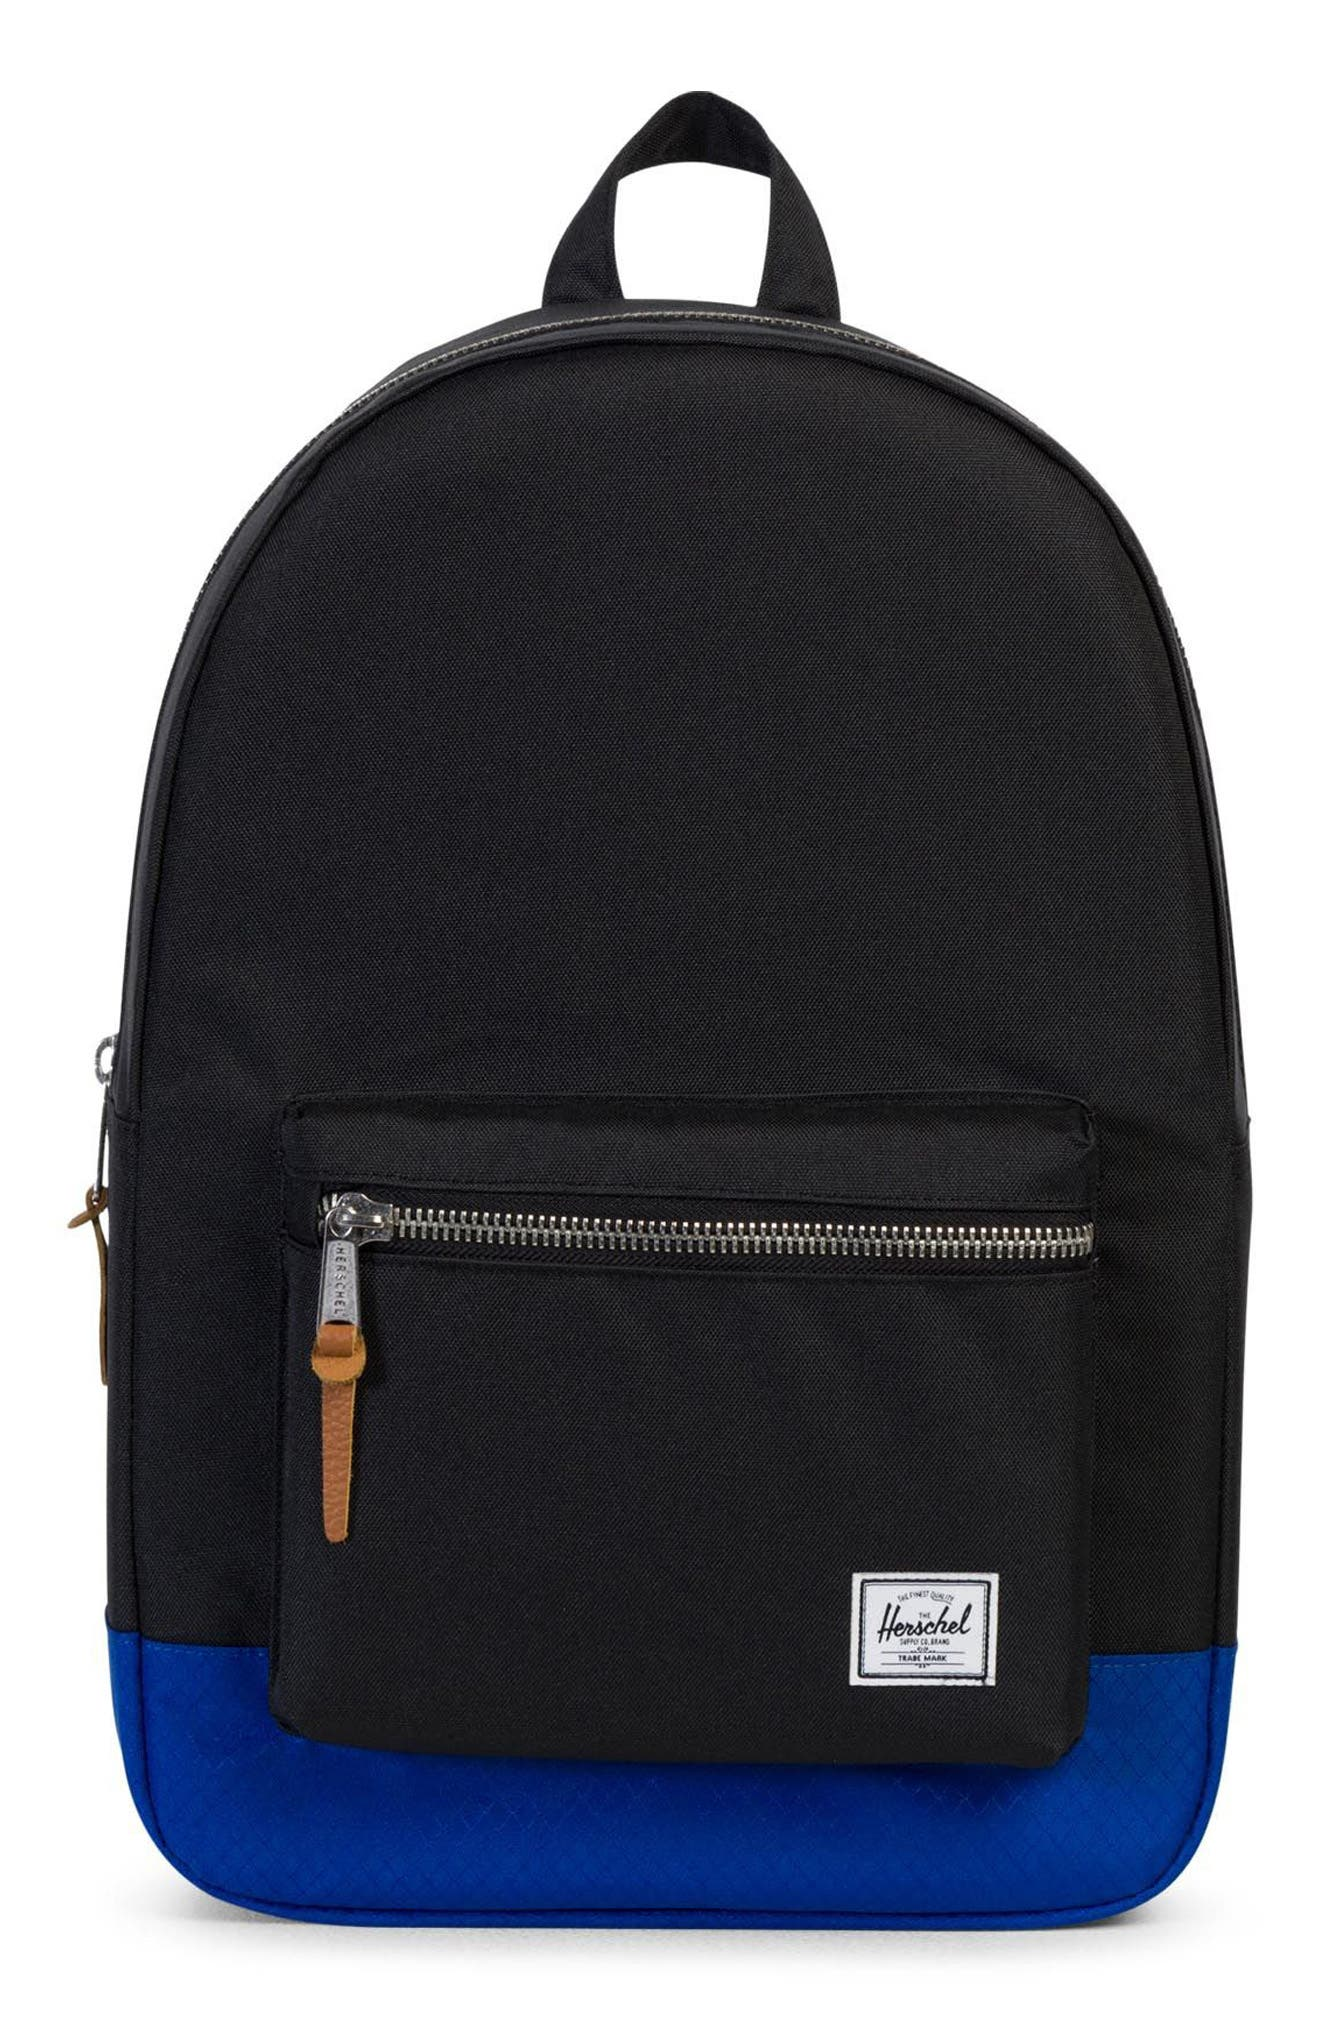 Settlement Backpack,                         Main,                         color, Black/ Surf The Web